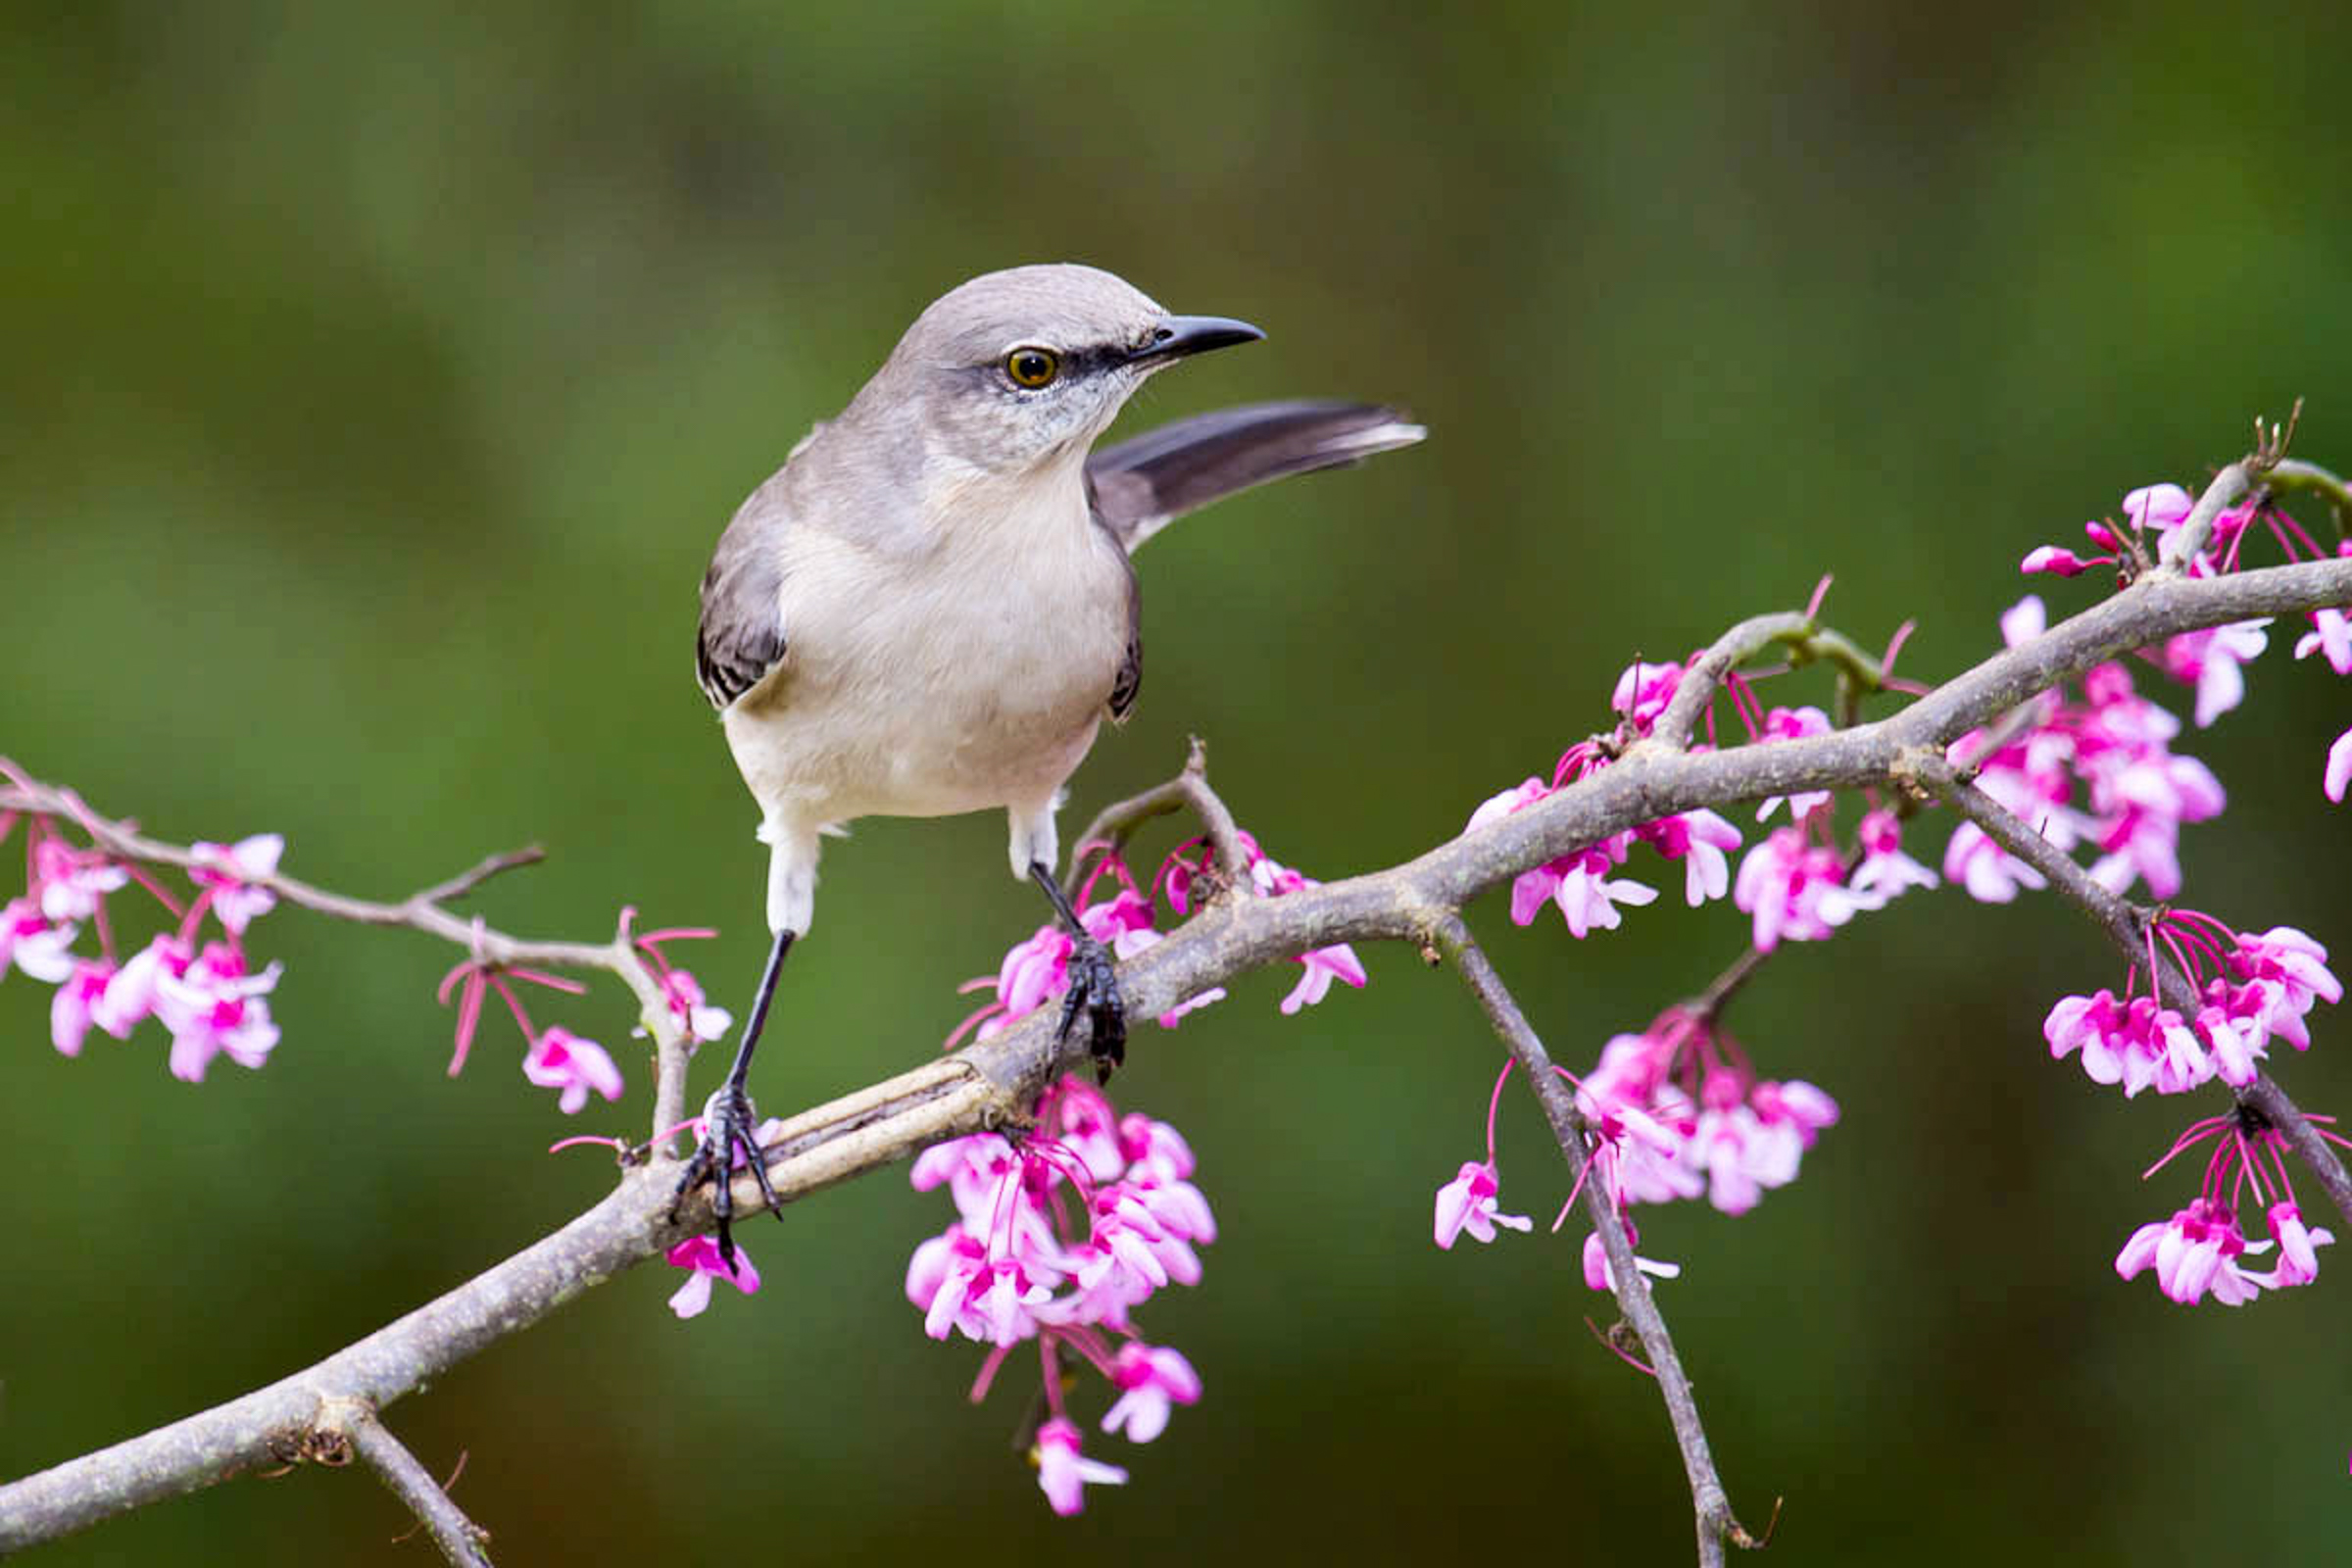 13 gbbc northern mockingbird eastern redbud glenda simmons fl 2012 kk%20%281%29